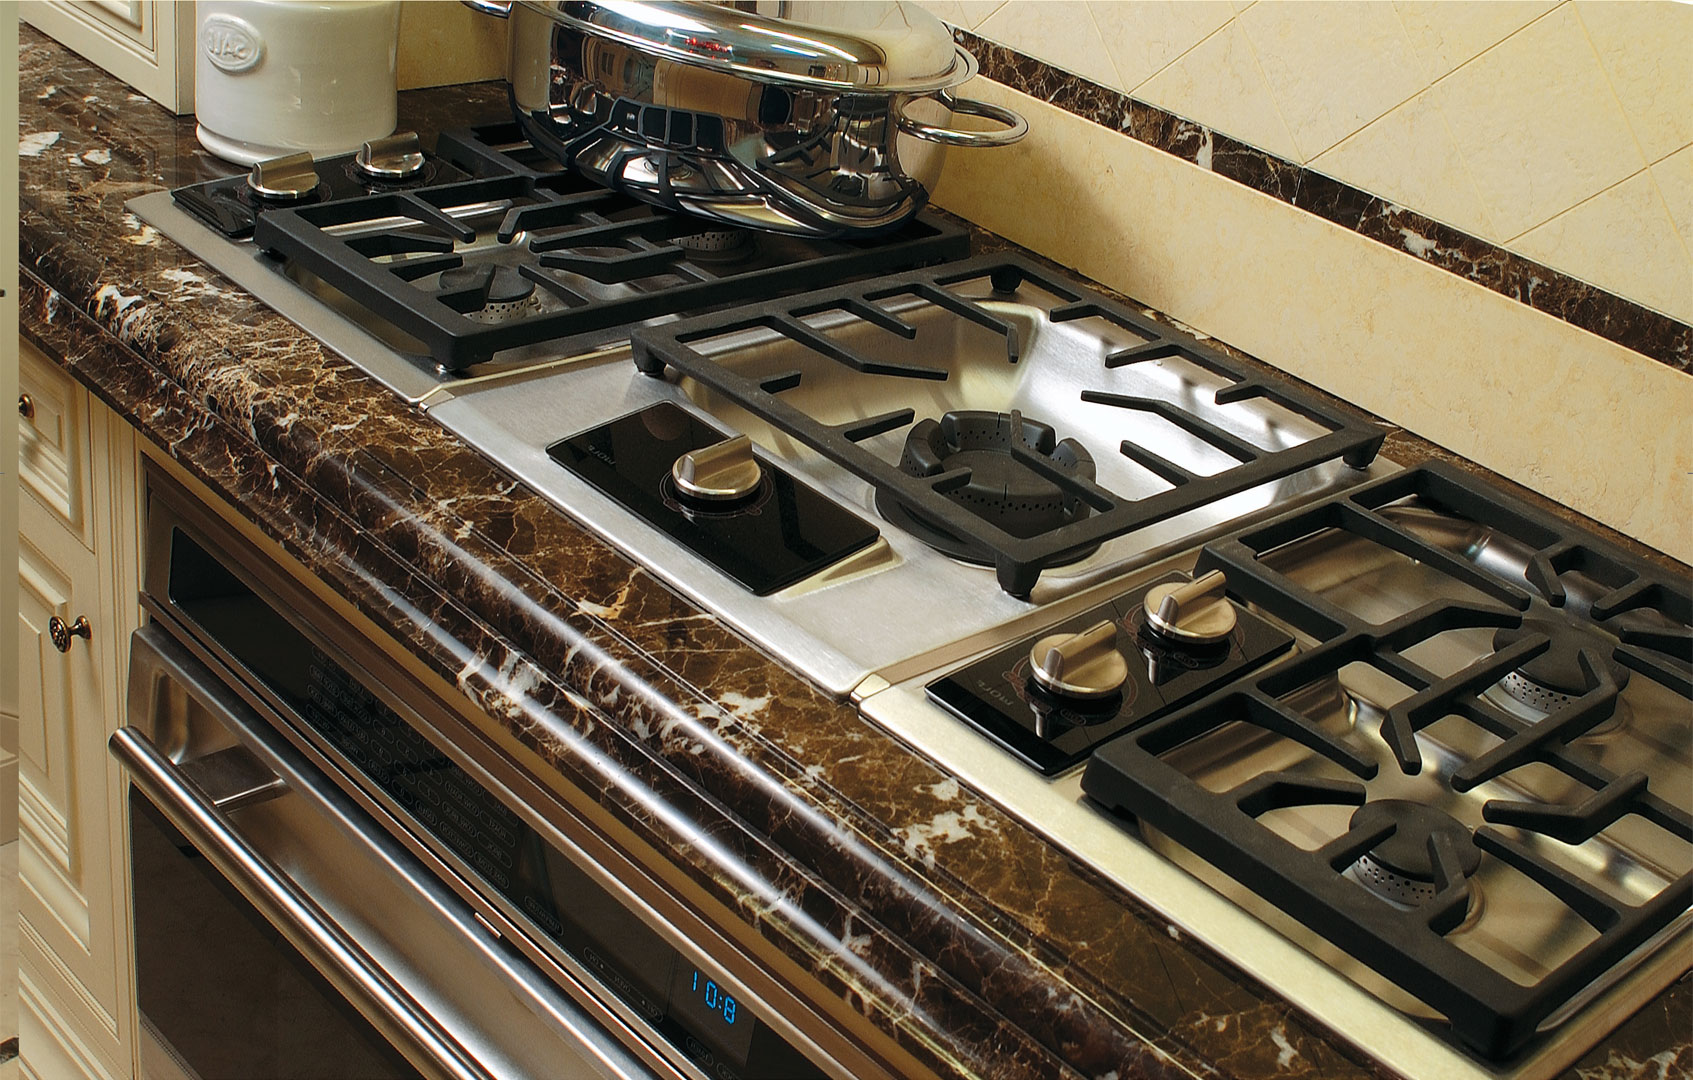 A professional wide rangetop with 5 burners